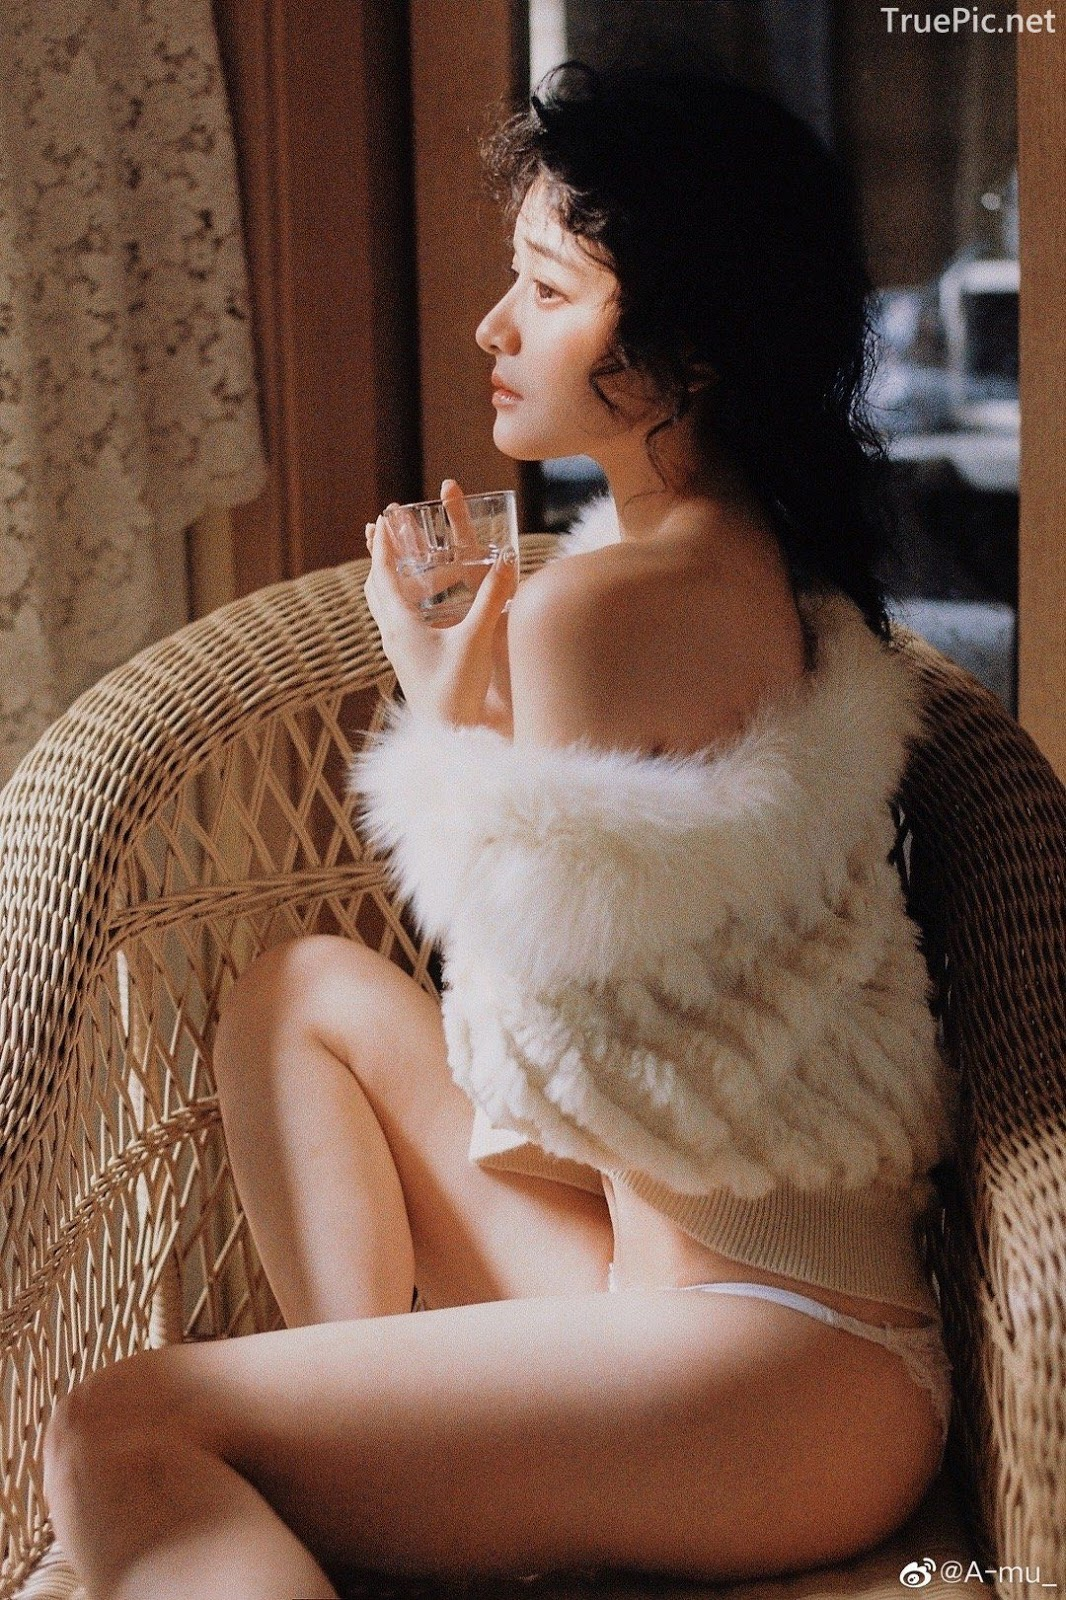 Chinese sexy model - Beautiful Fairy in white - Photos by A-mu - Picture 10